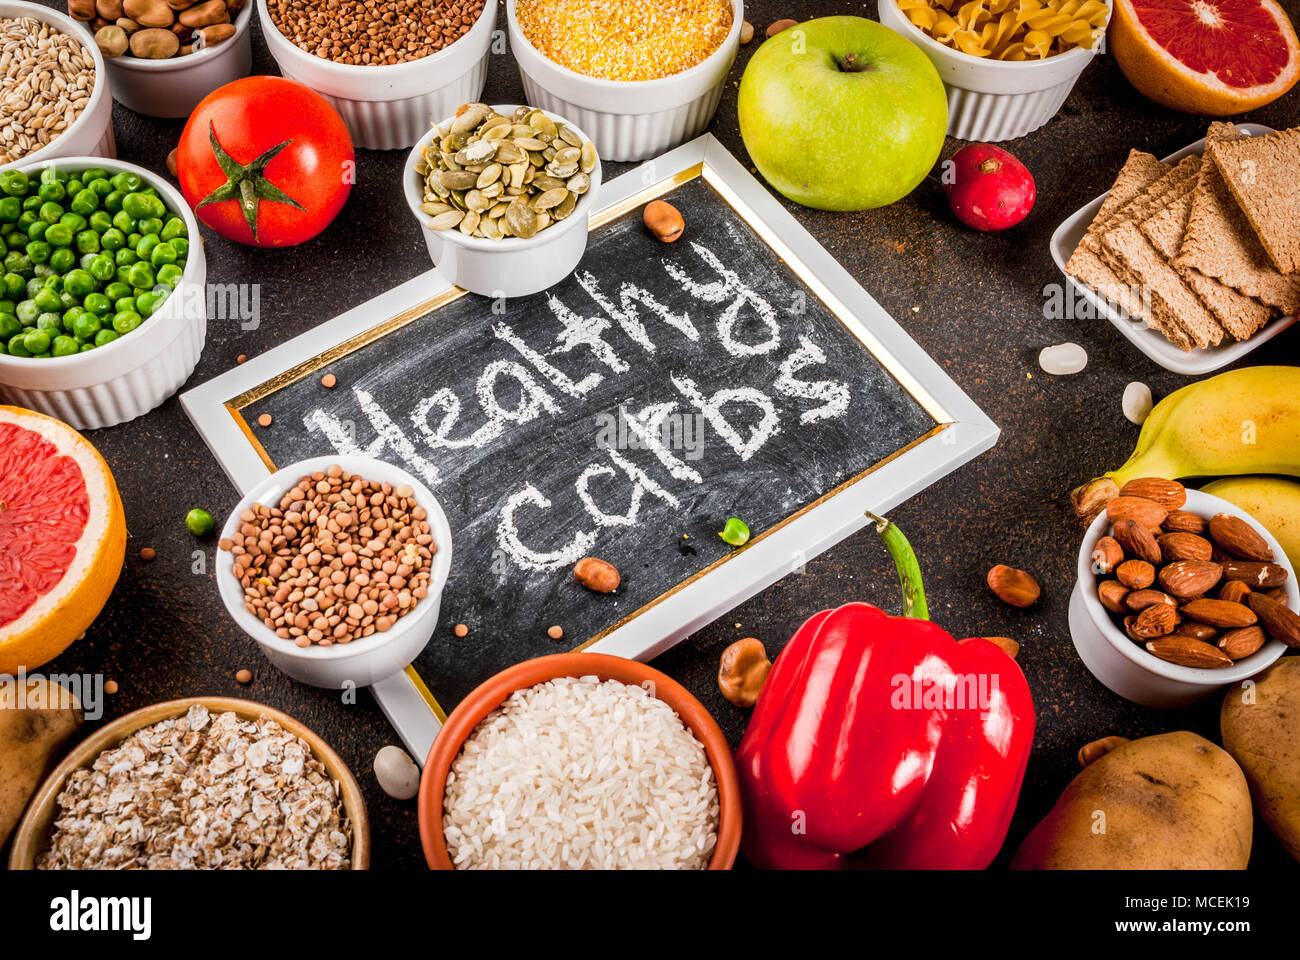 Diet food background concept, healthy carbohydrates (carbs) products - fruits, vegetables, cereals, nuts, beans, dark blue concrete background - Stock Image